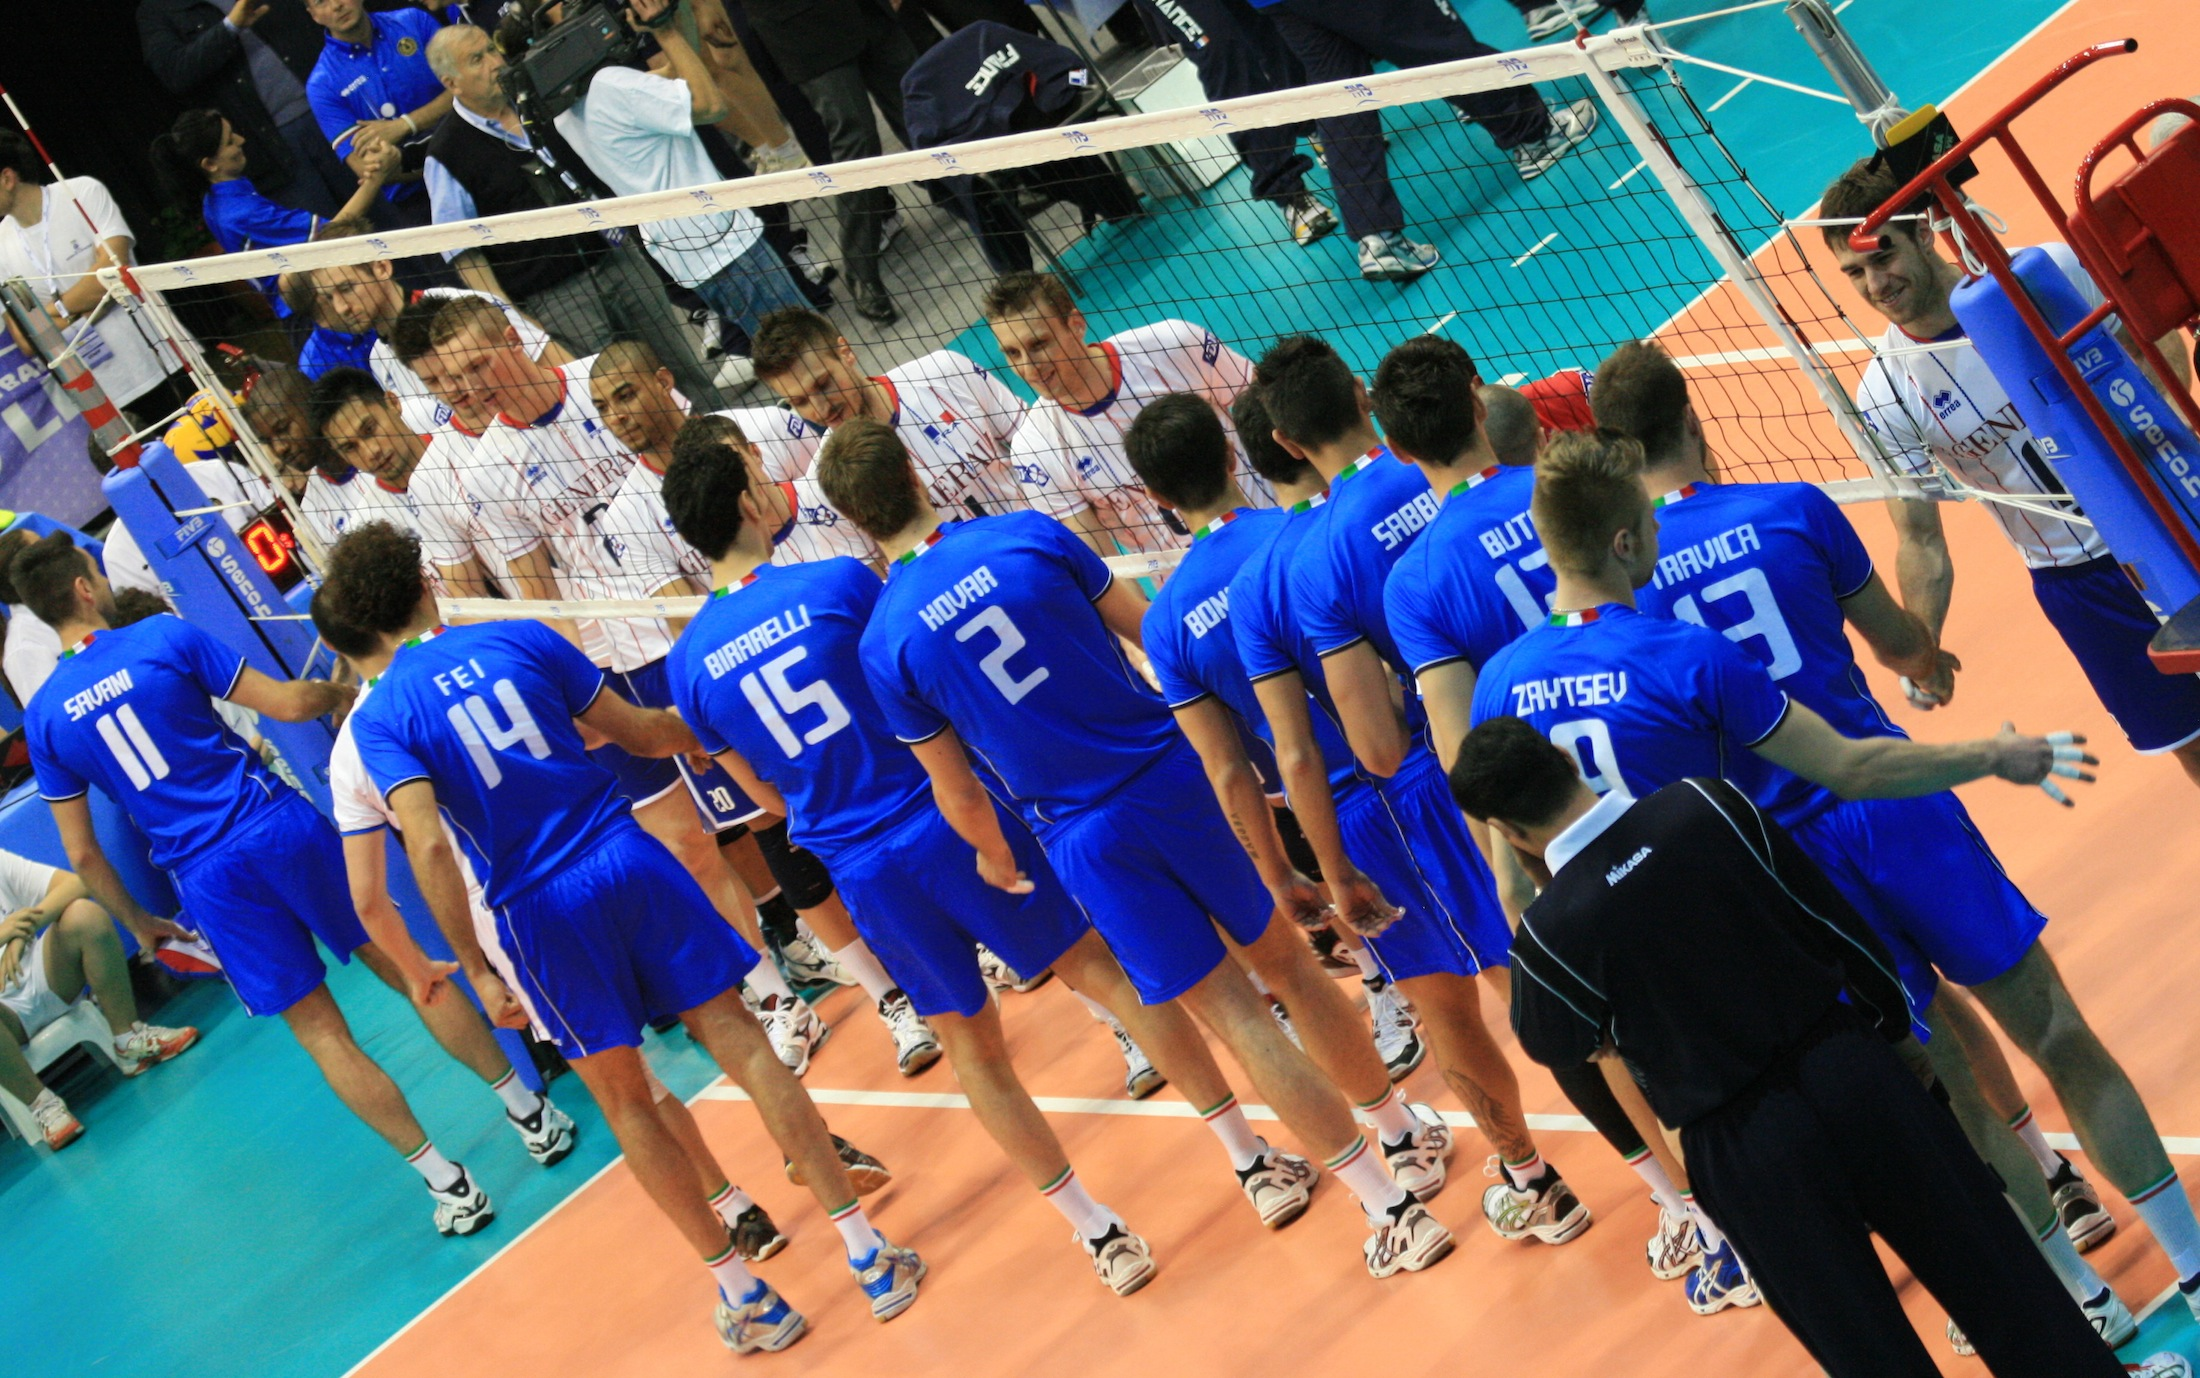 World League: ultima chance per l'Italvolley